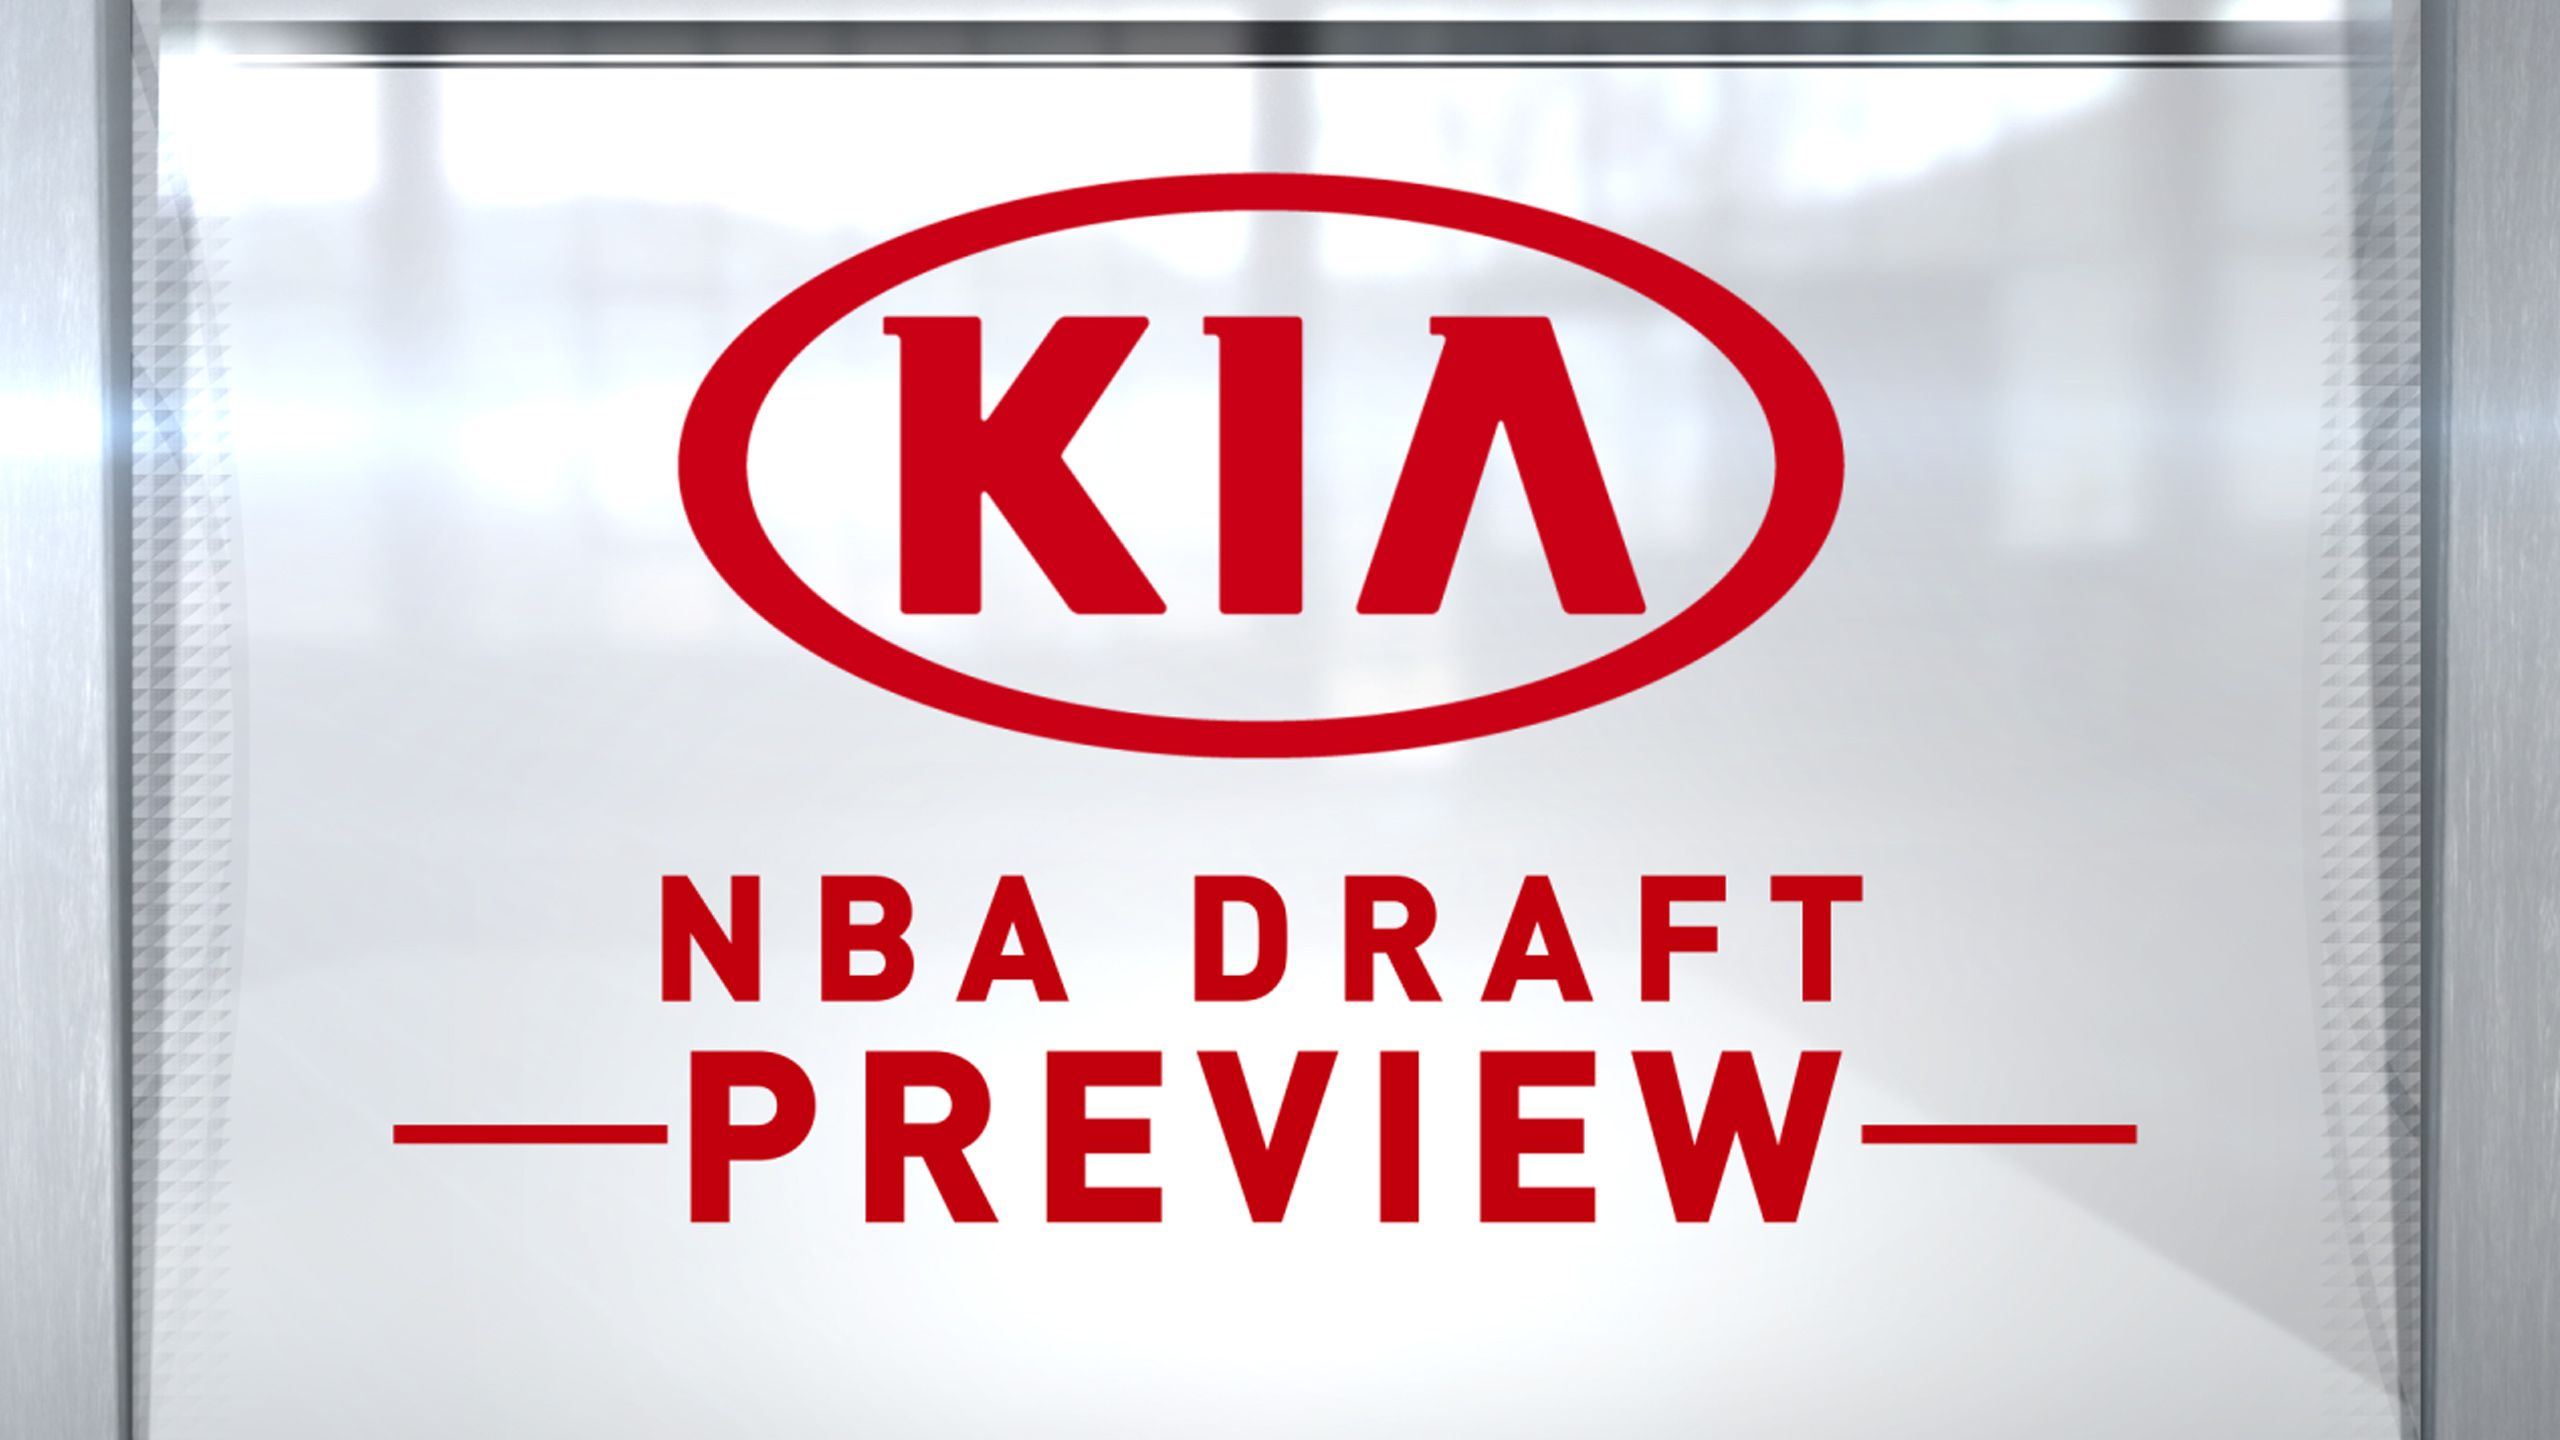 NBA Draft Preview Show 2018 Presented by Kia